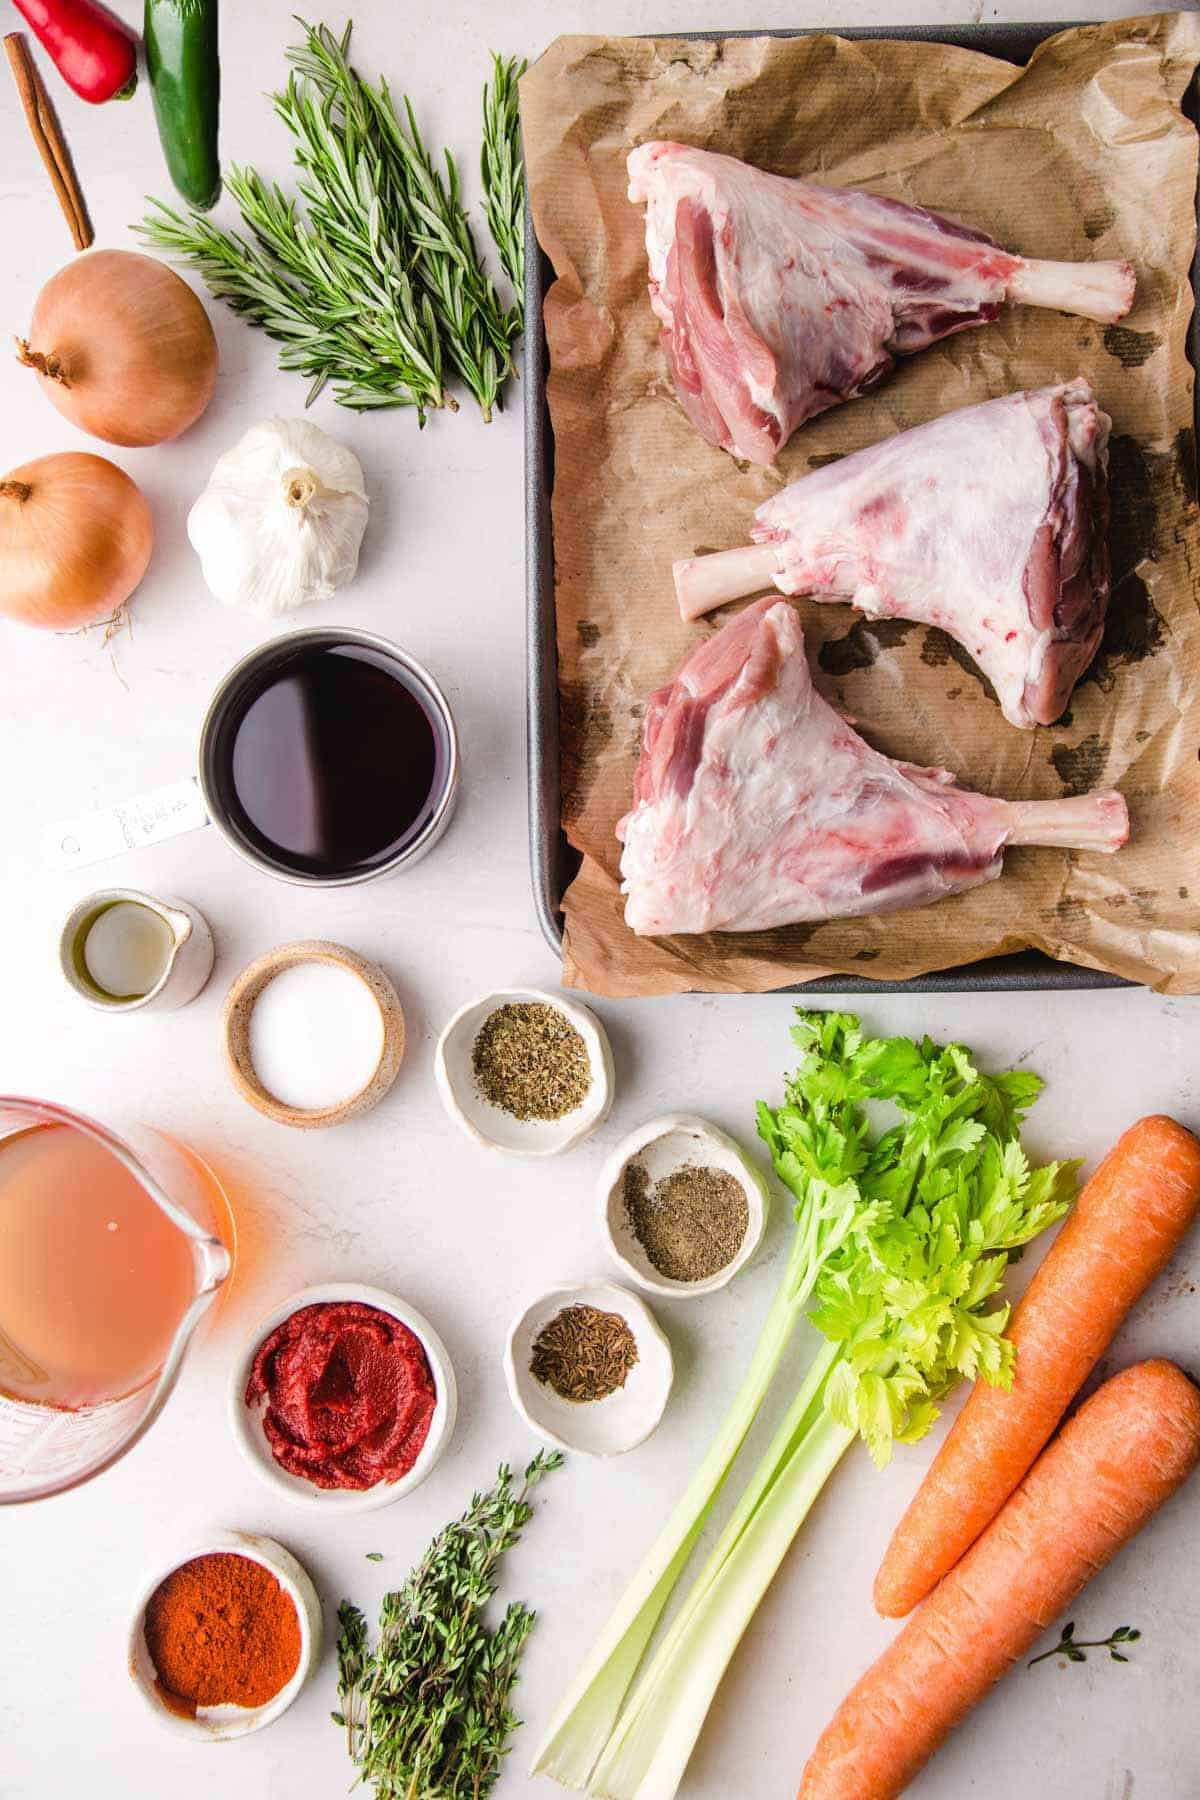 Ingredients needed to make red wine braised lamb shanks